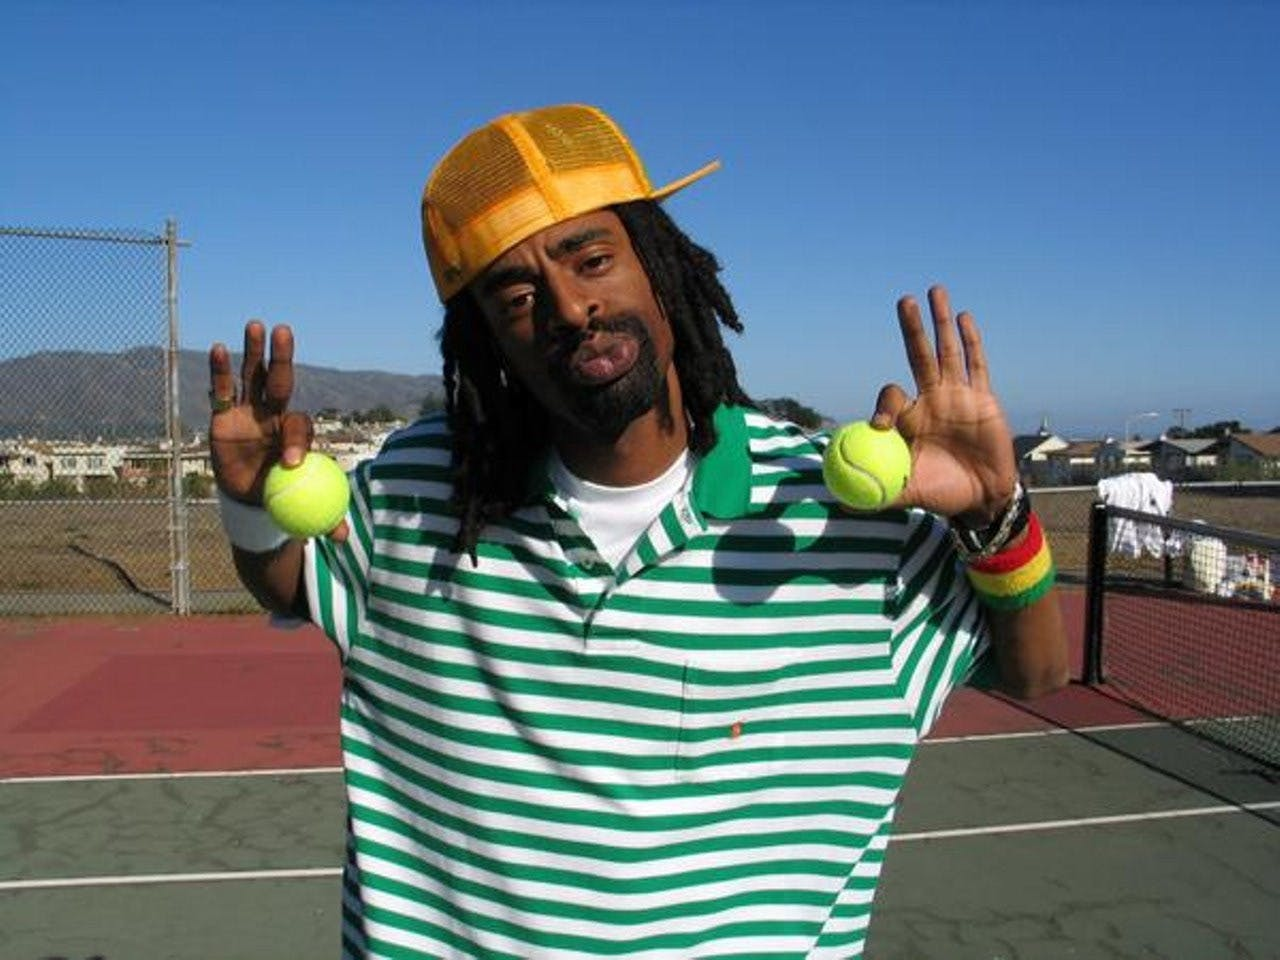 MAC DRE: RAP SINGER INDICTED IN CONSPIRACY TO ROB BANK, 1992